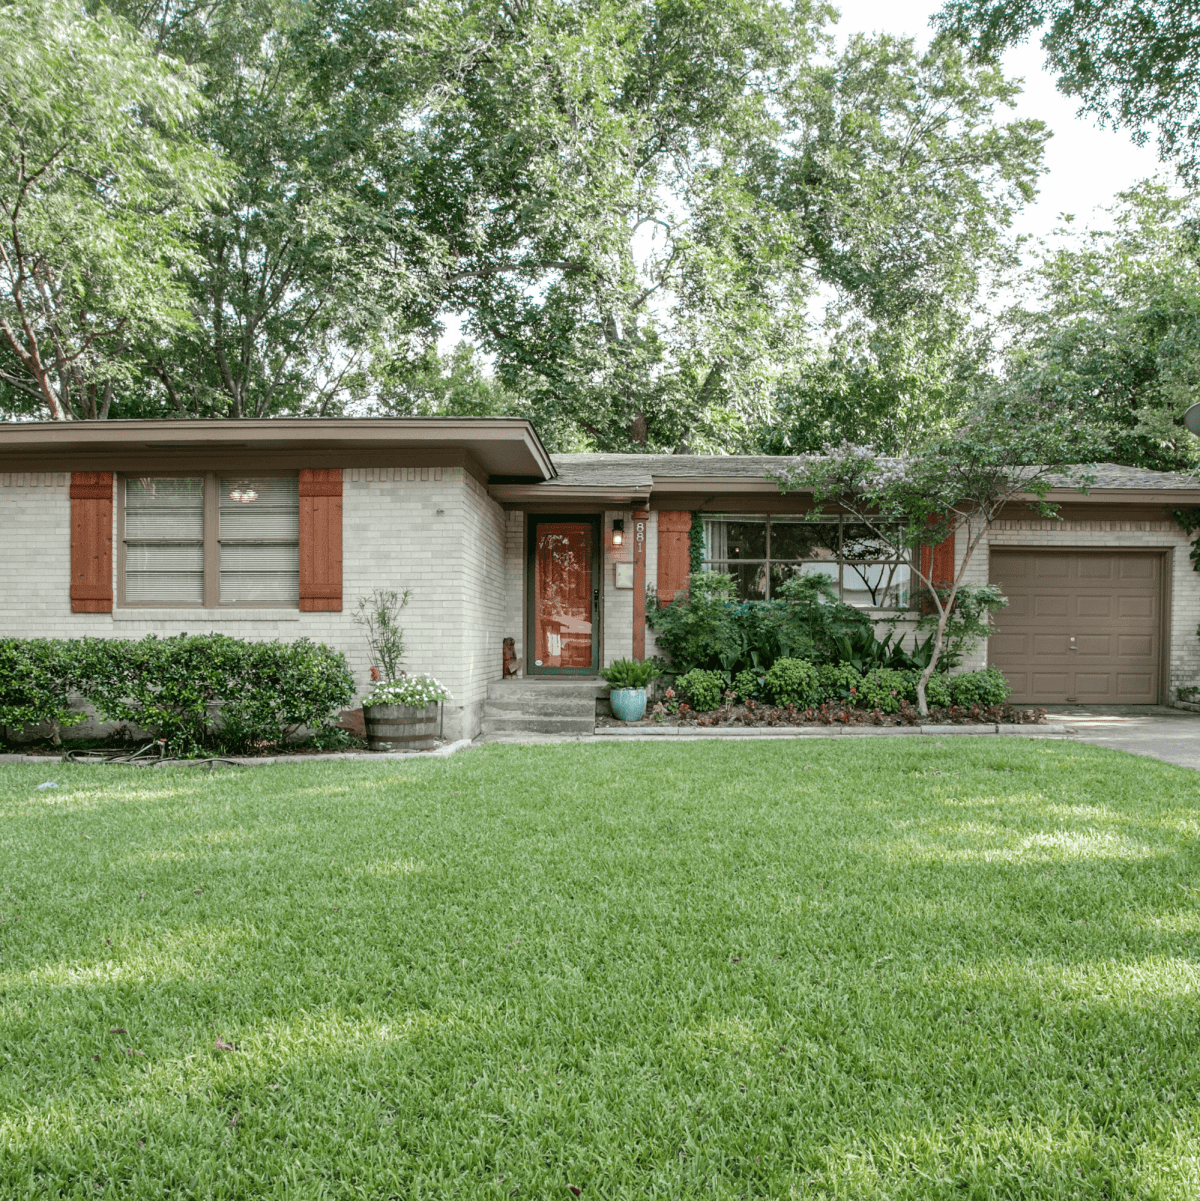 Exterior of 881 Berkinshire Dr. in Dallas